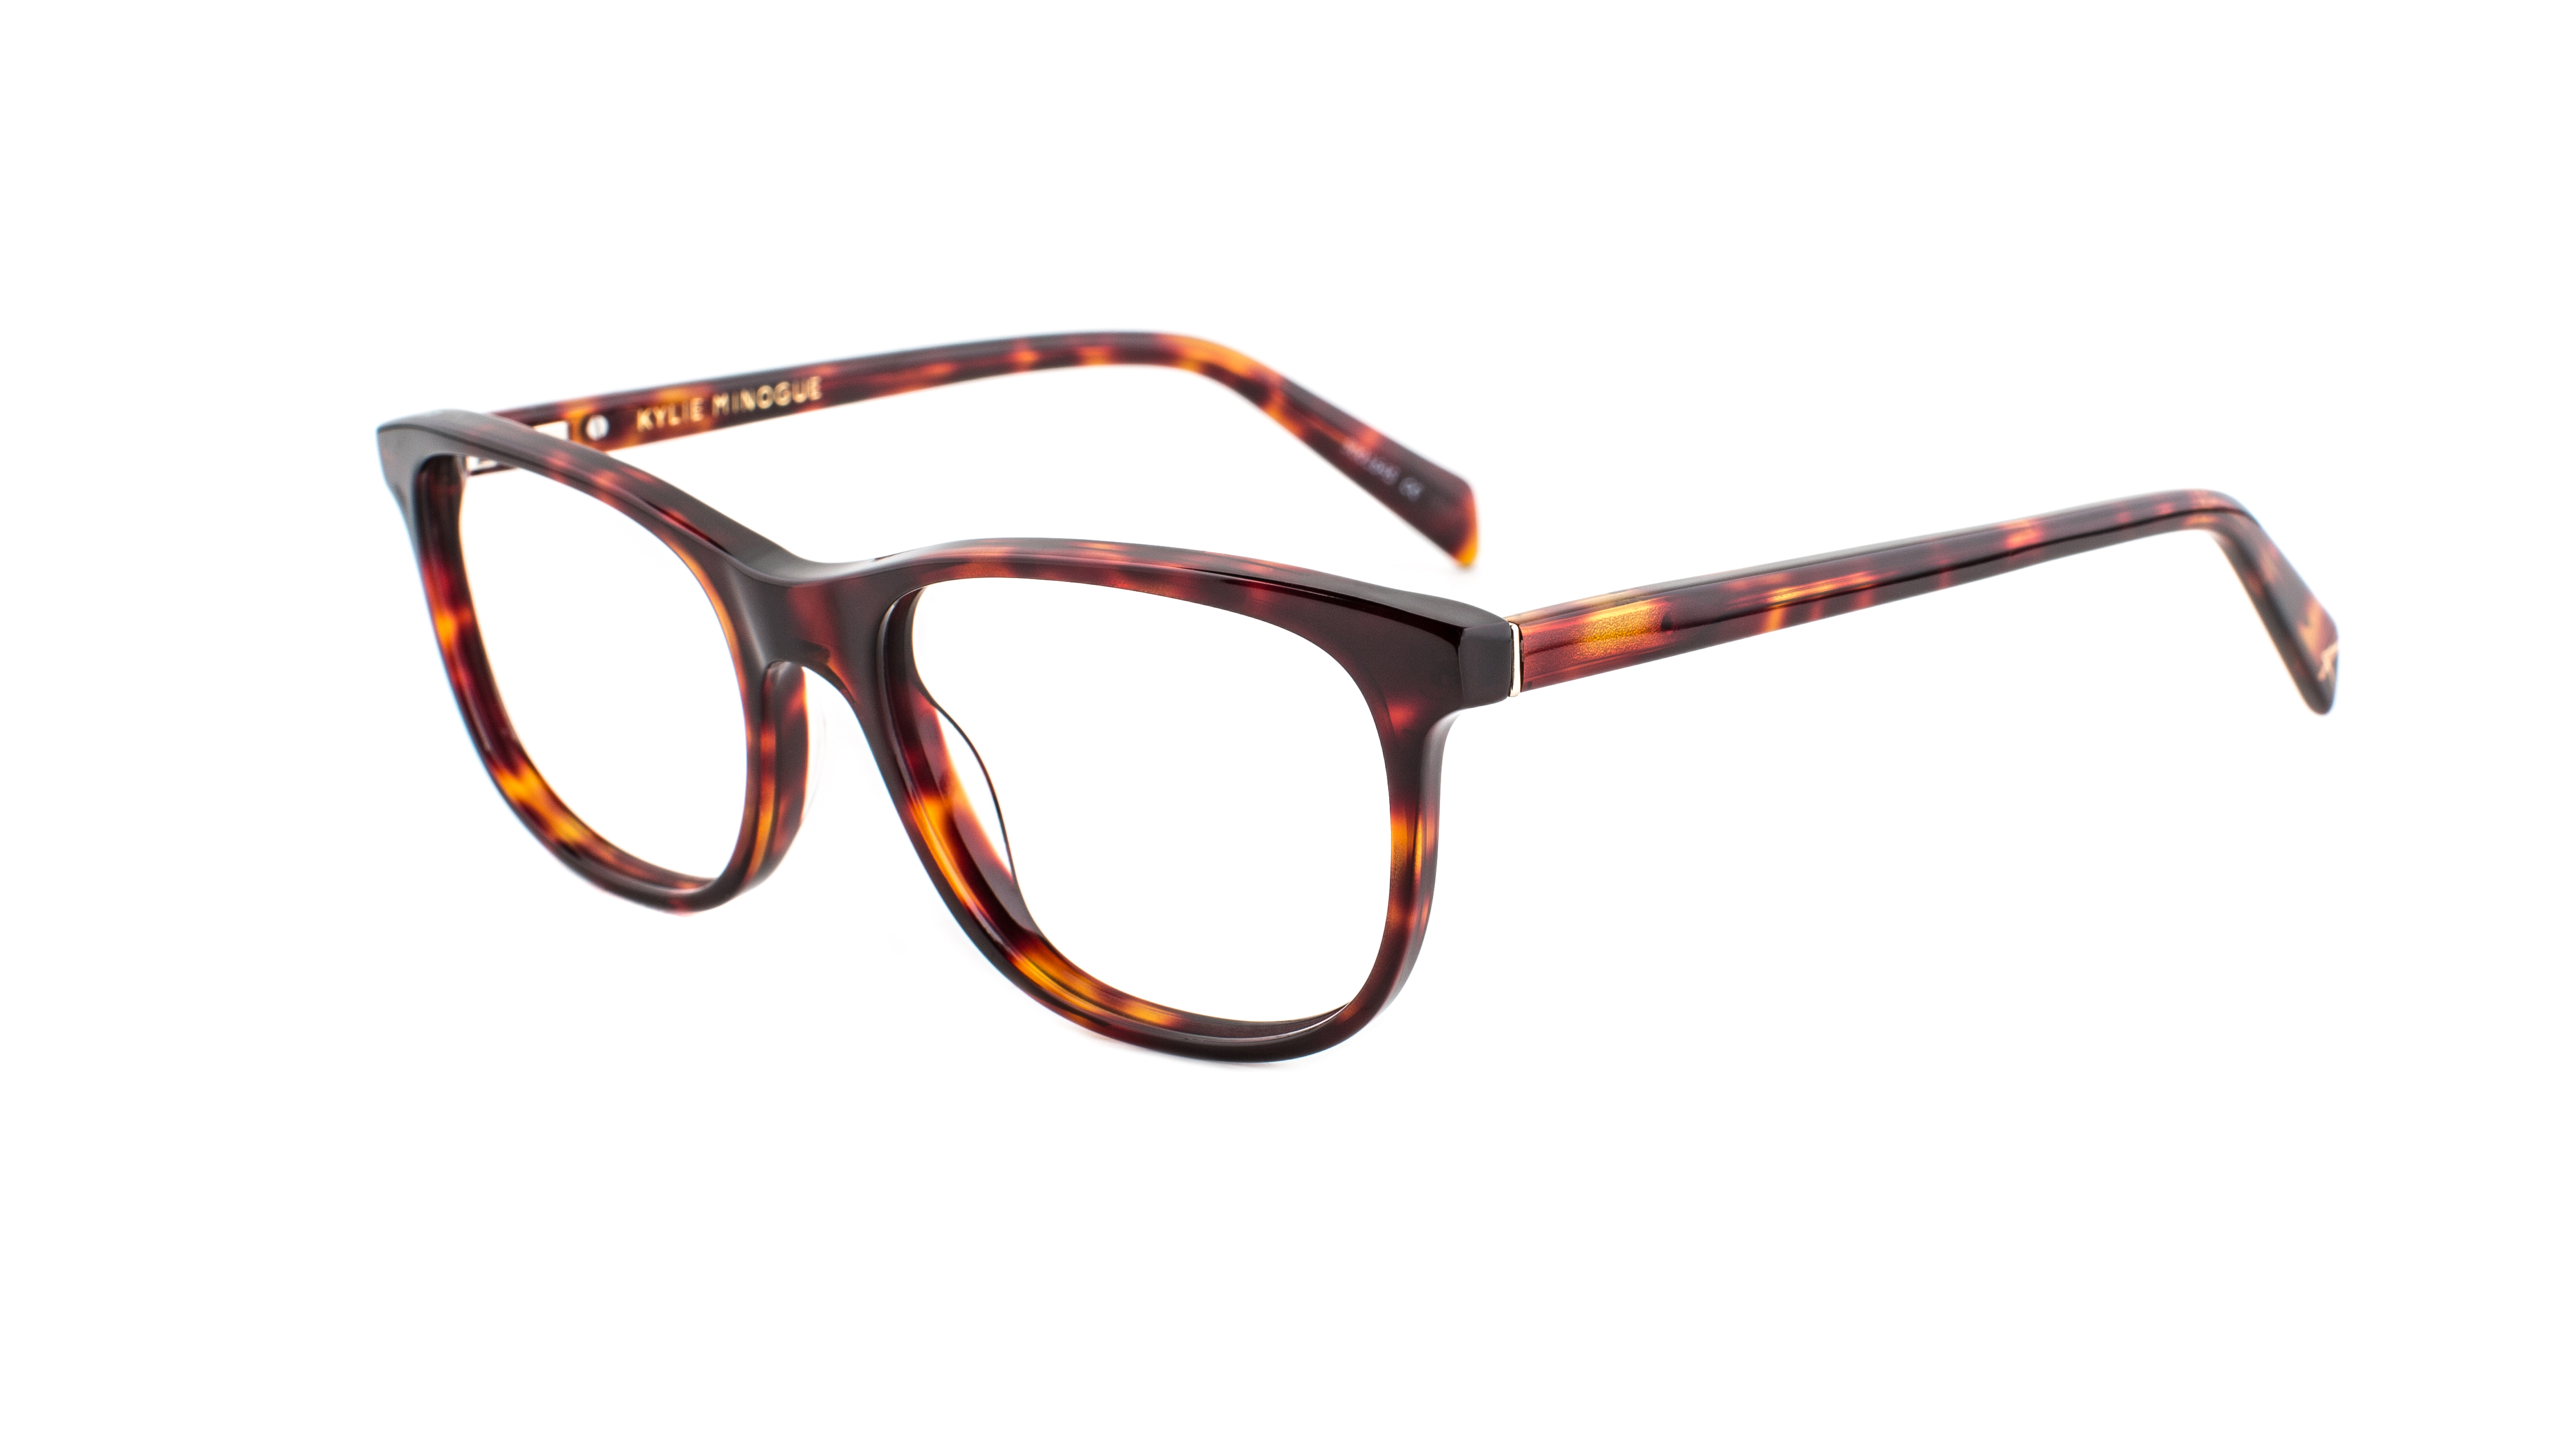 Kylie Minogue Eyewear_Kylie 15_SKU 30520325_RRP 2 pairs from $369 (2)